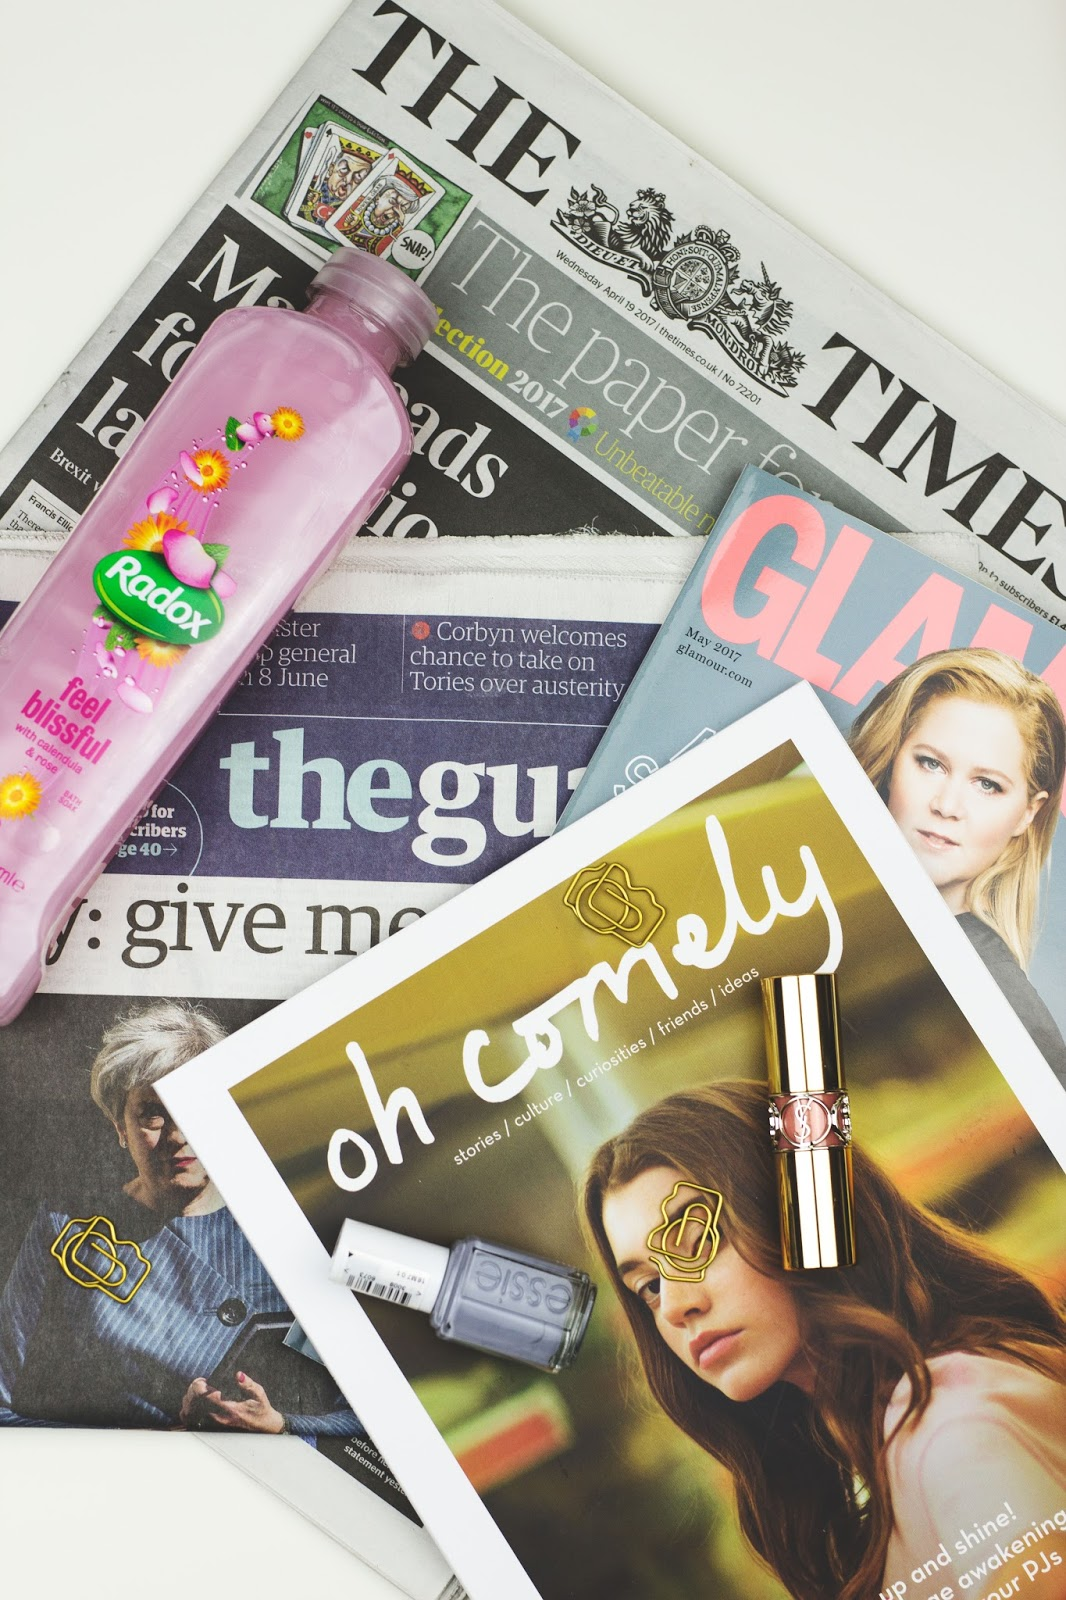 Happiness, Lifestyle bloggers, Lifestyle blogs, Flatlay, Newspapers UK, Oh Comely Magazine, Oh Comely April 2017, Glamour Magazine May 2017, Glamour Magazine, Essie Cocktail Bling, Camera Paperclips, YSL Lipstick, Derby blogs, Katie Writes, Katie Writes Blog,